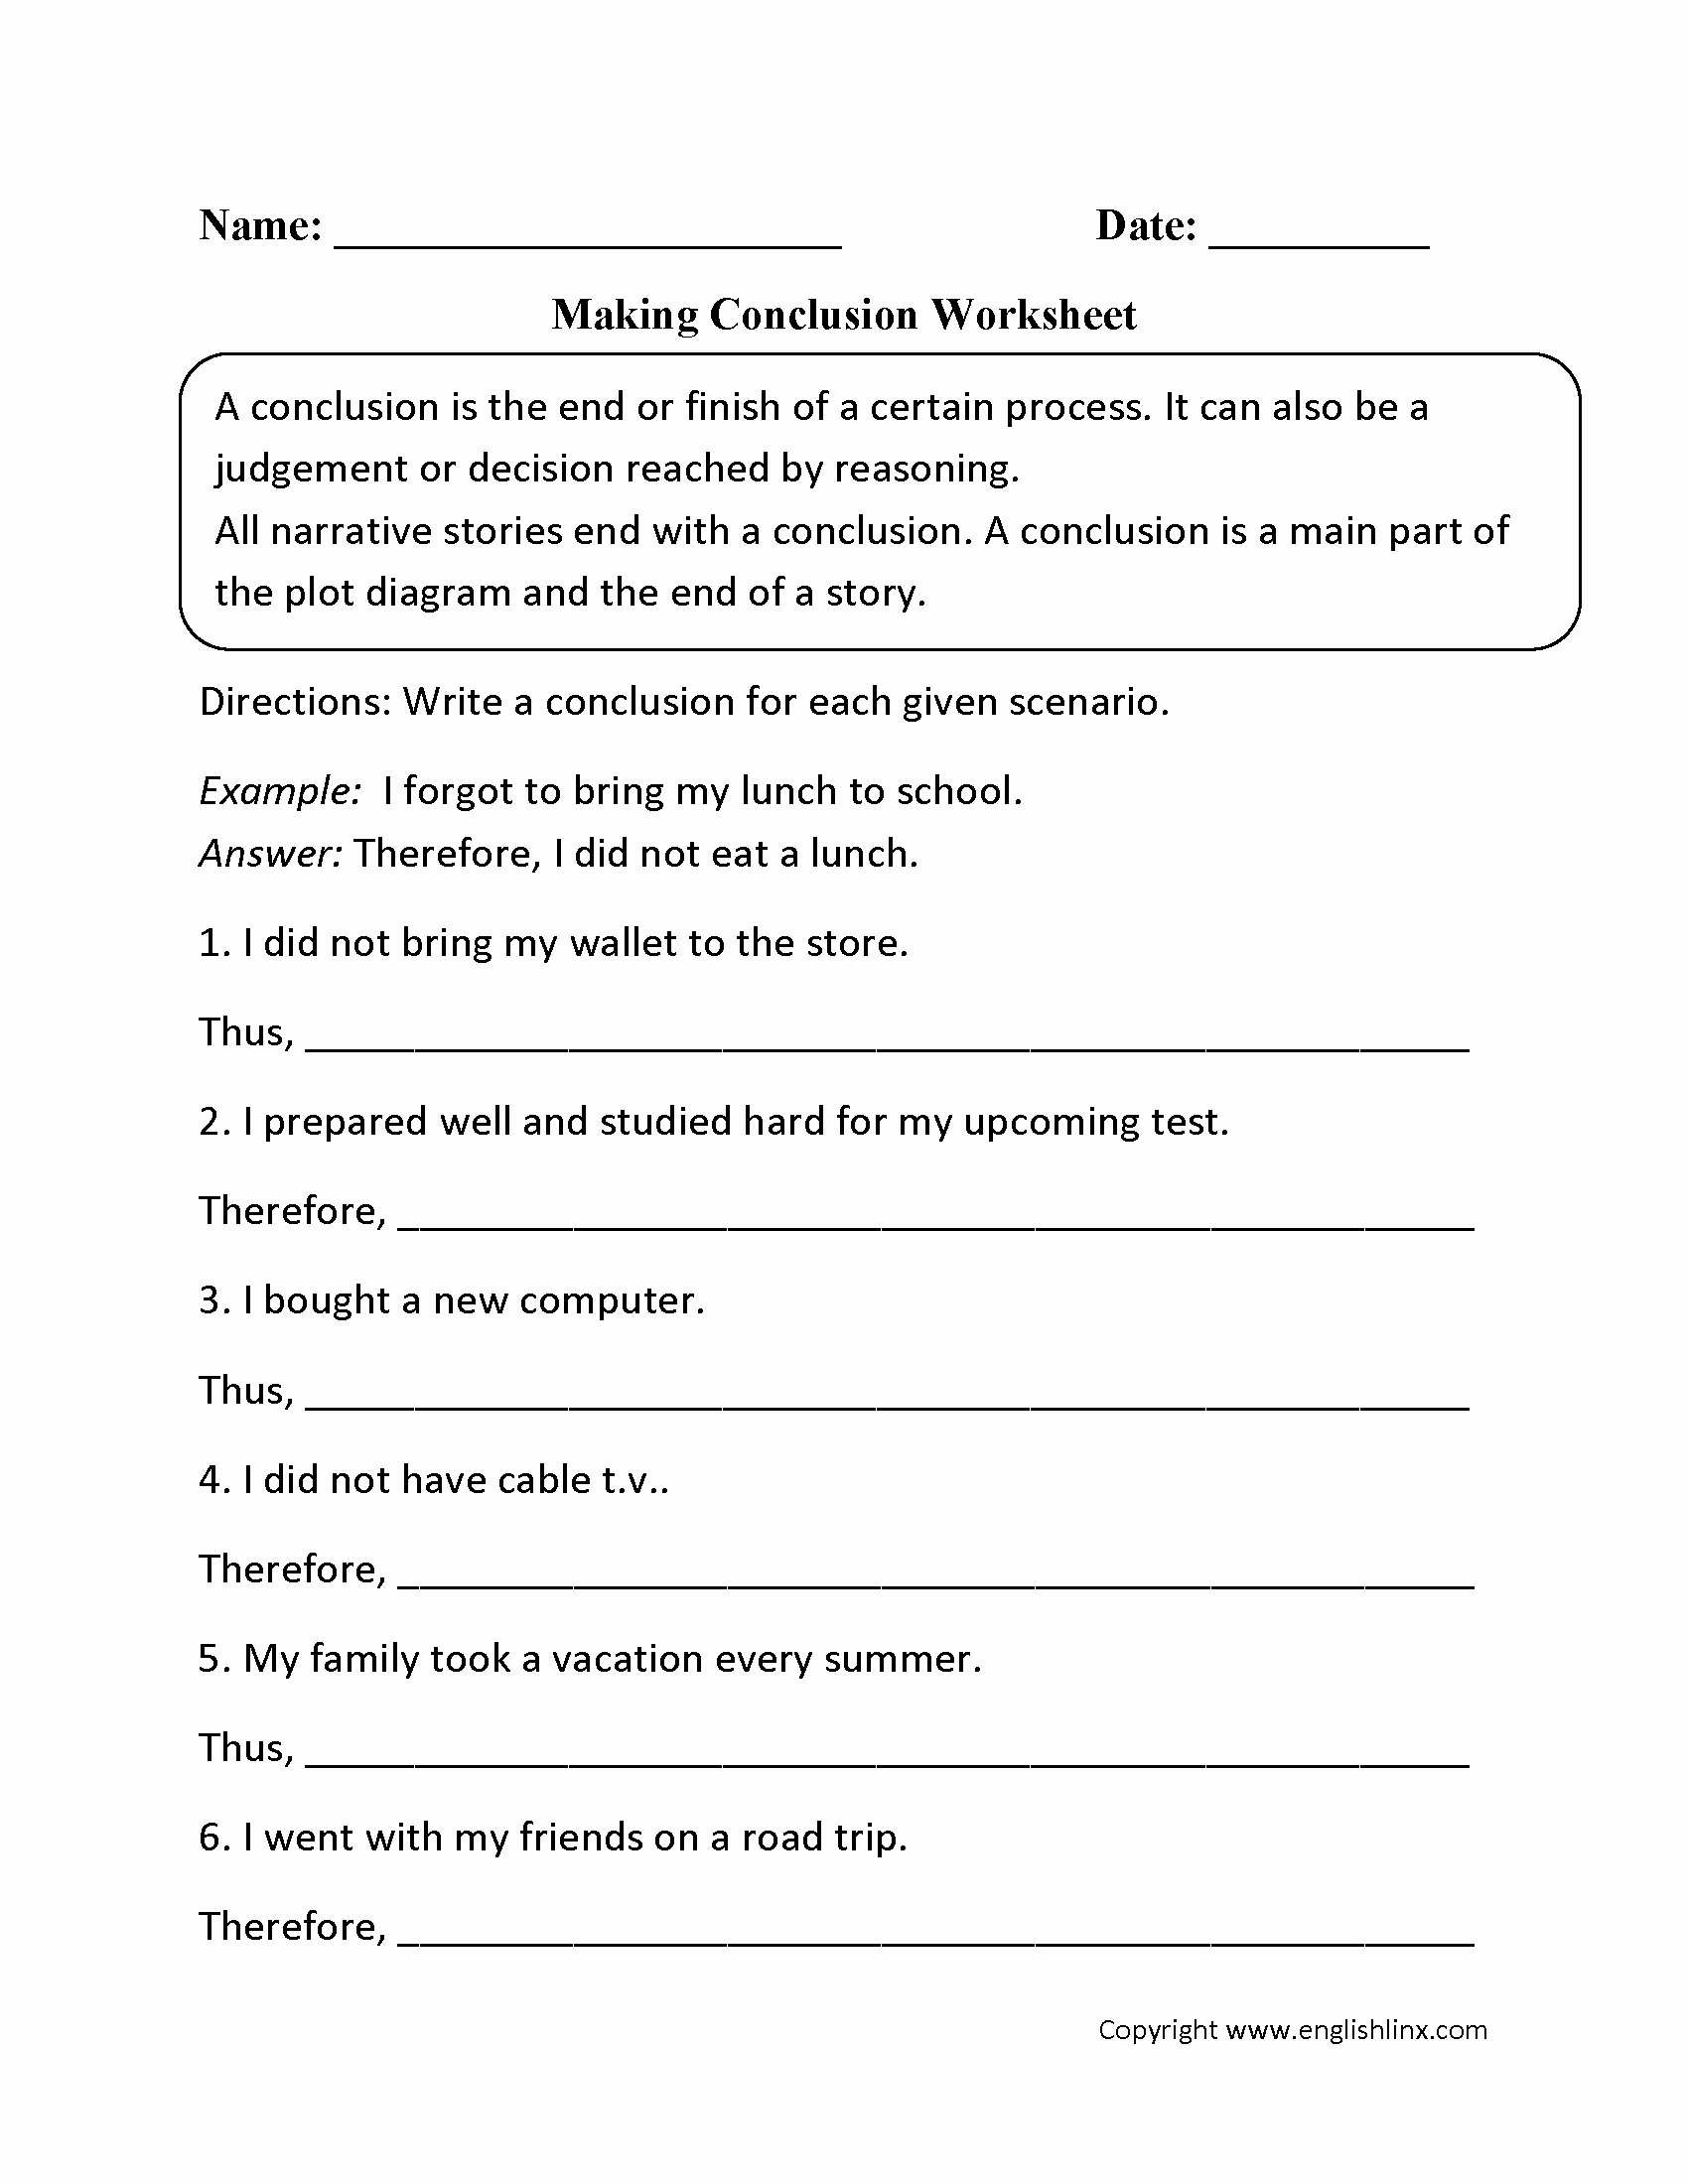 Making Conclusions Geometry Worksheet Answers